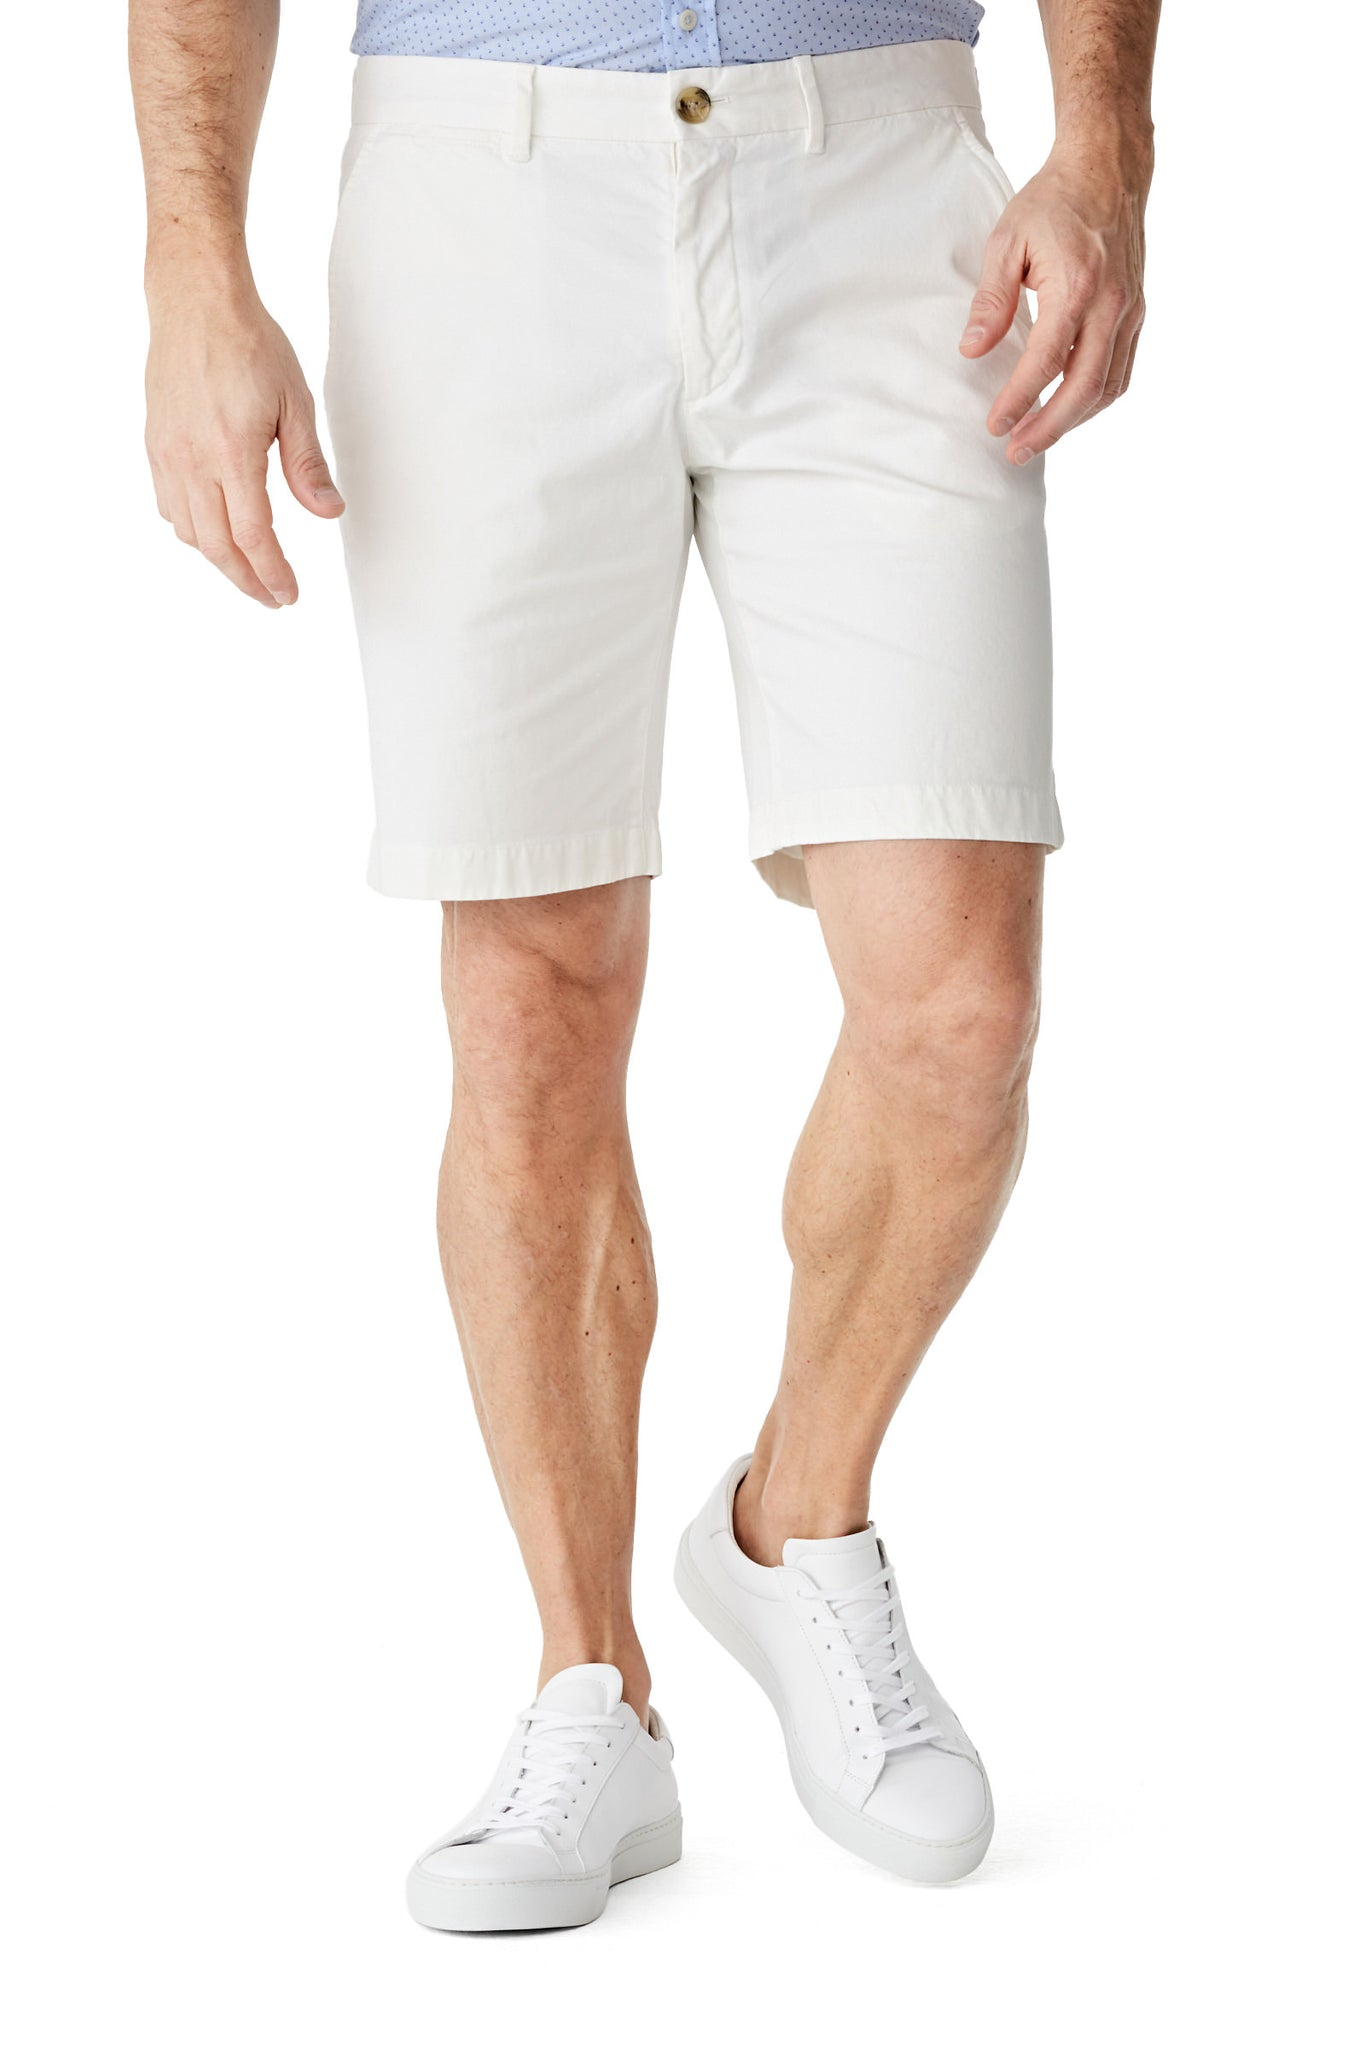 McG Regular fit chino short